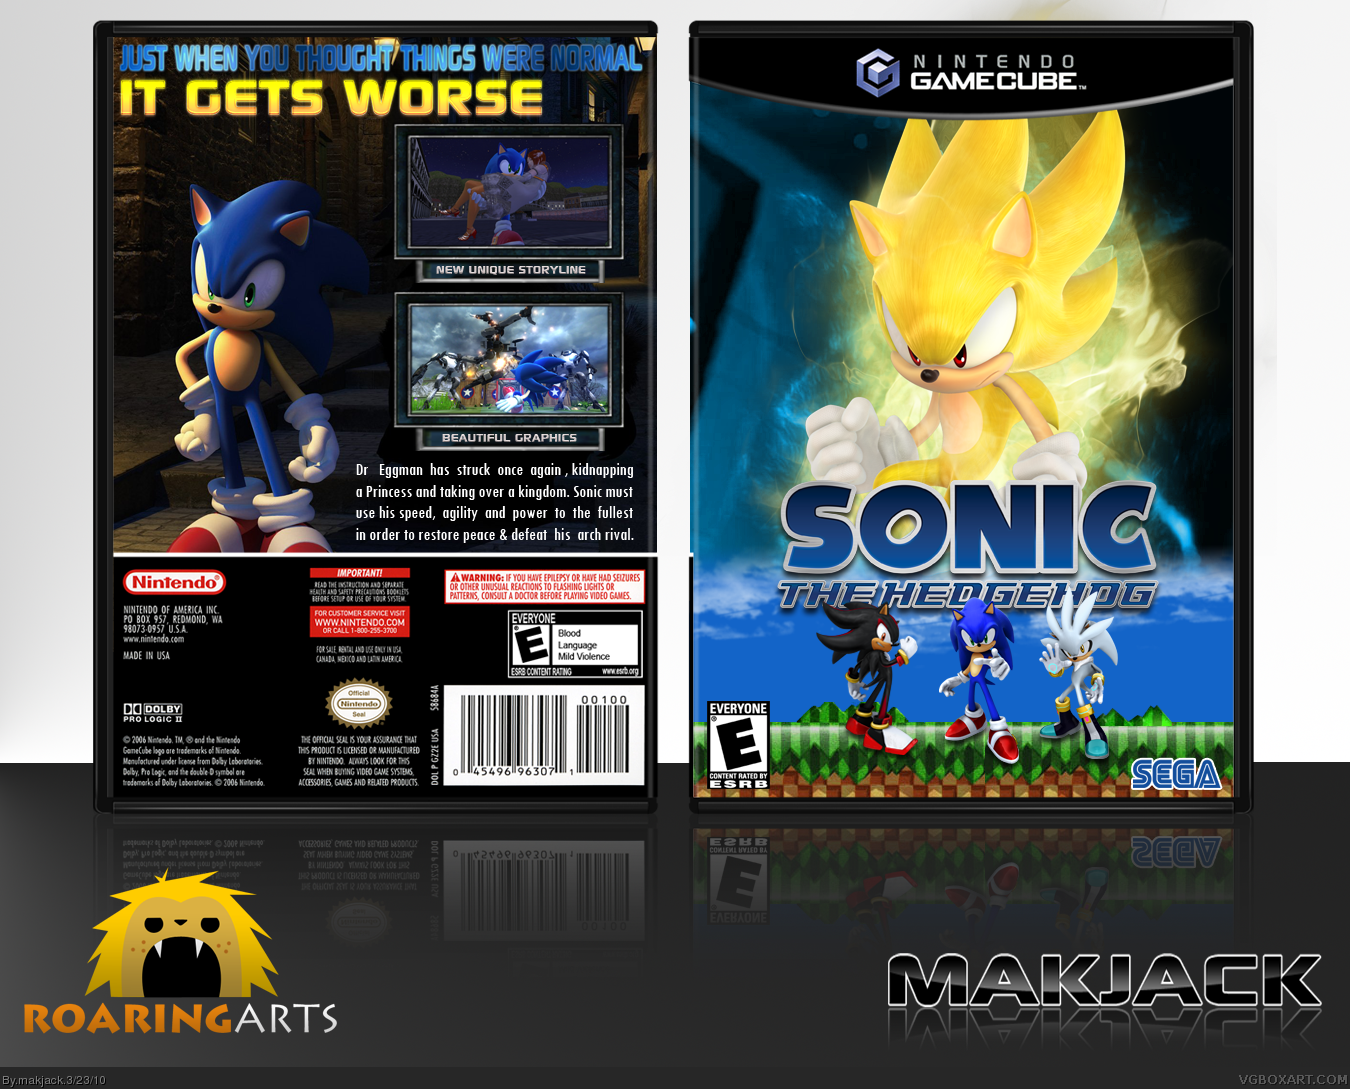 Sonic The Hedgehog 2006 Video Game Images Debug Mode For Sonic